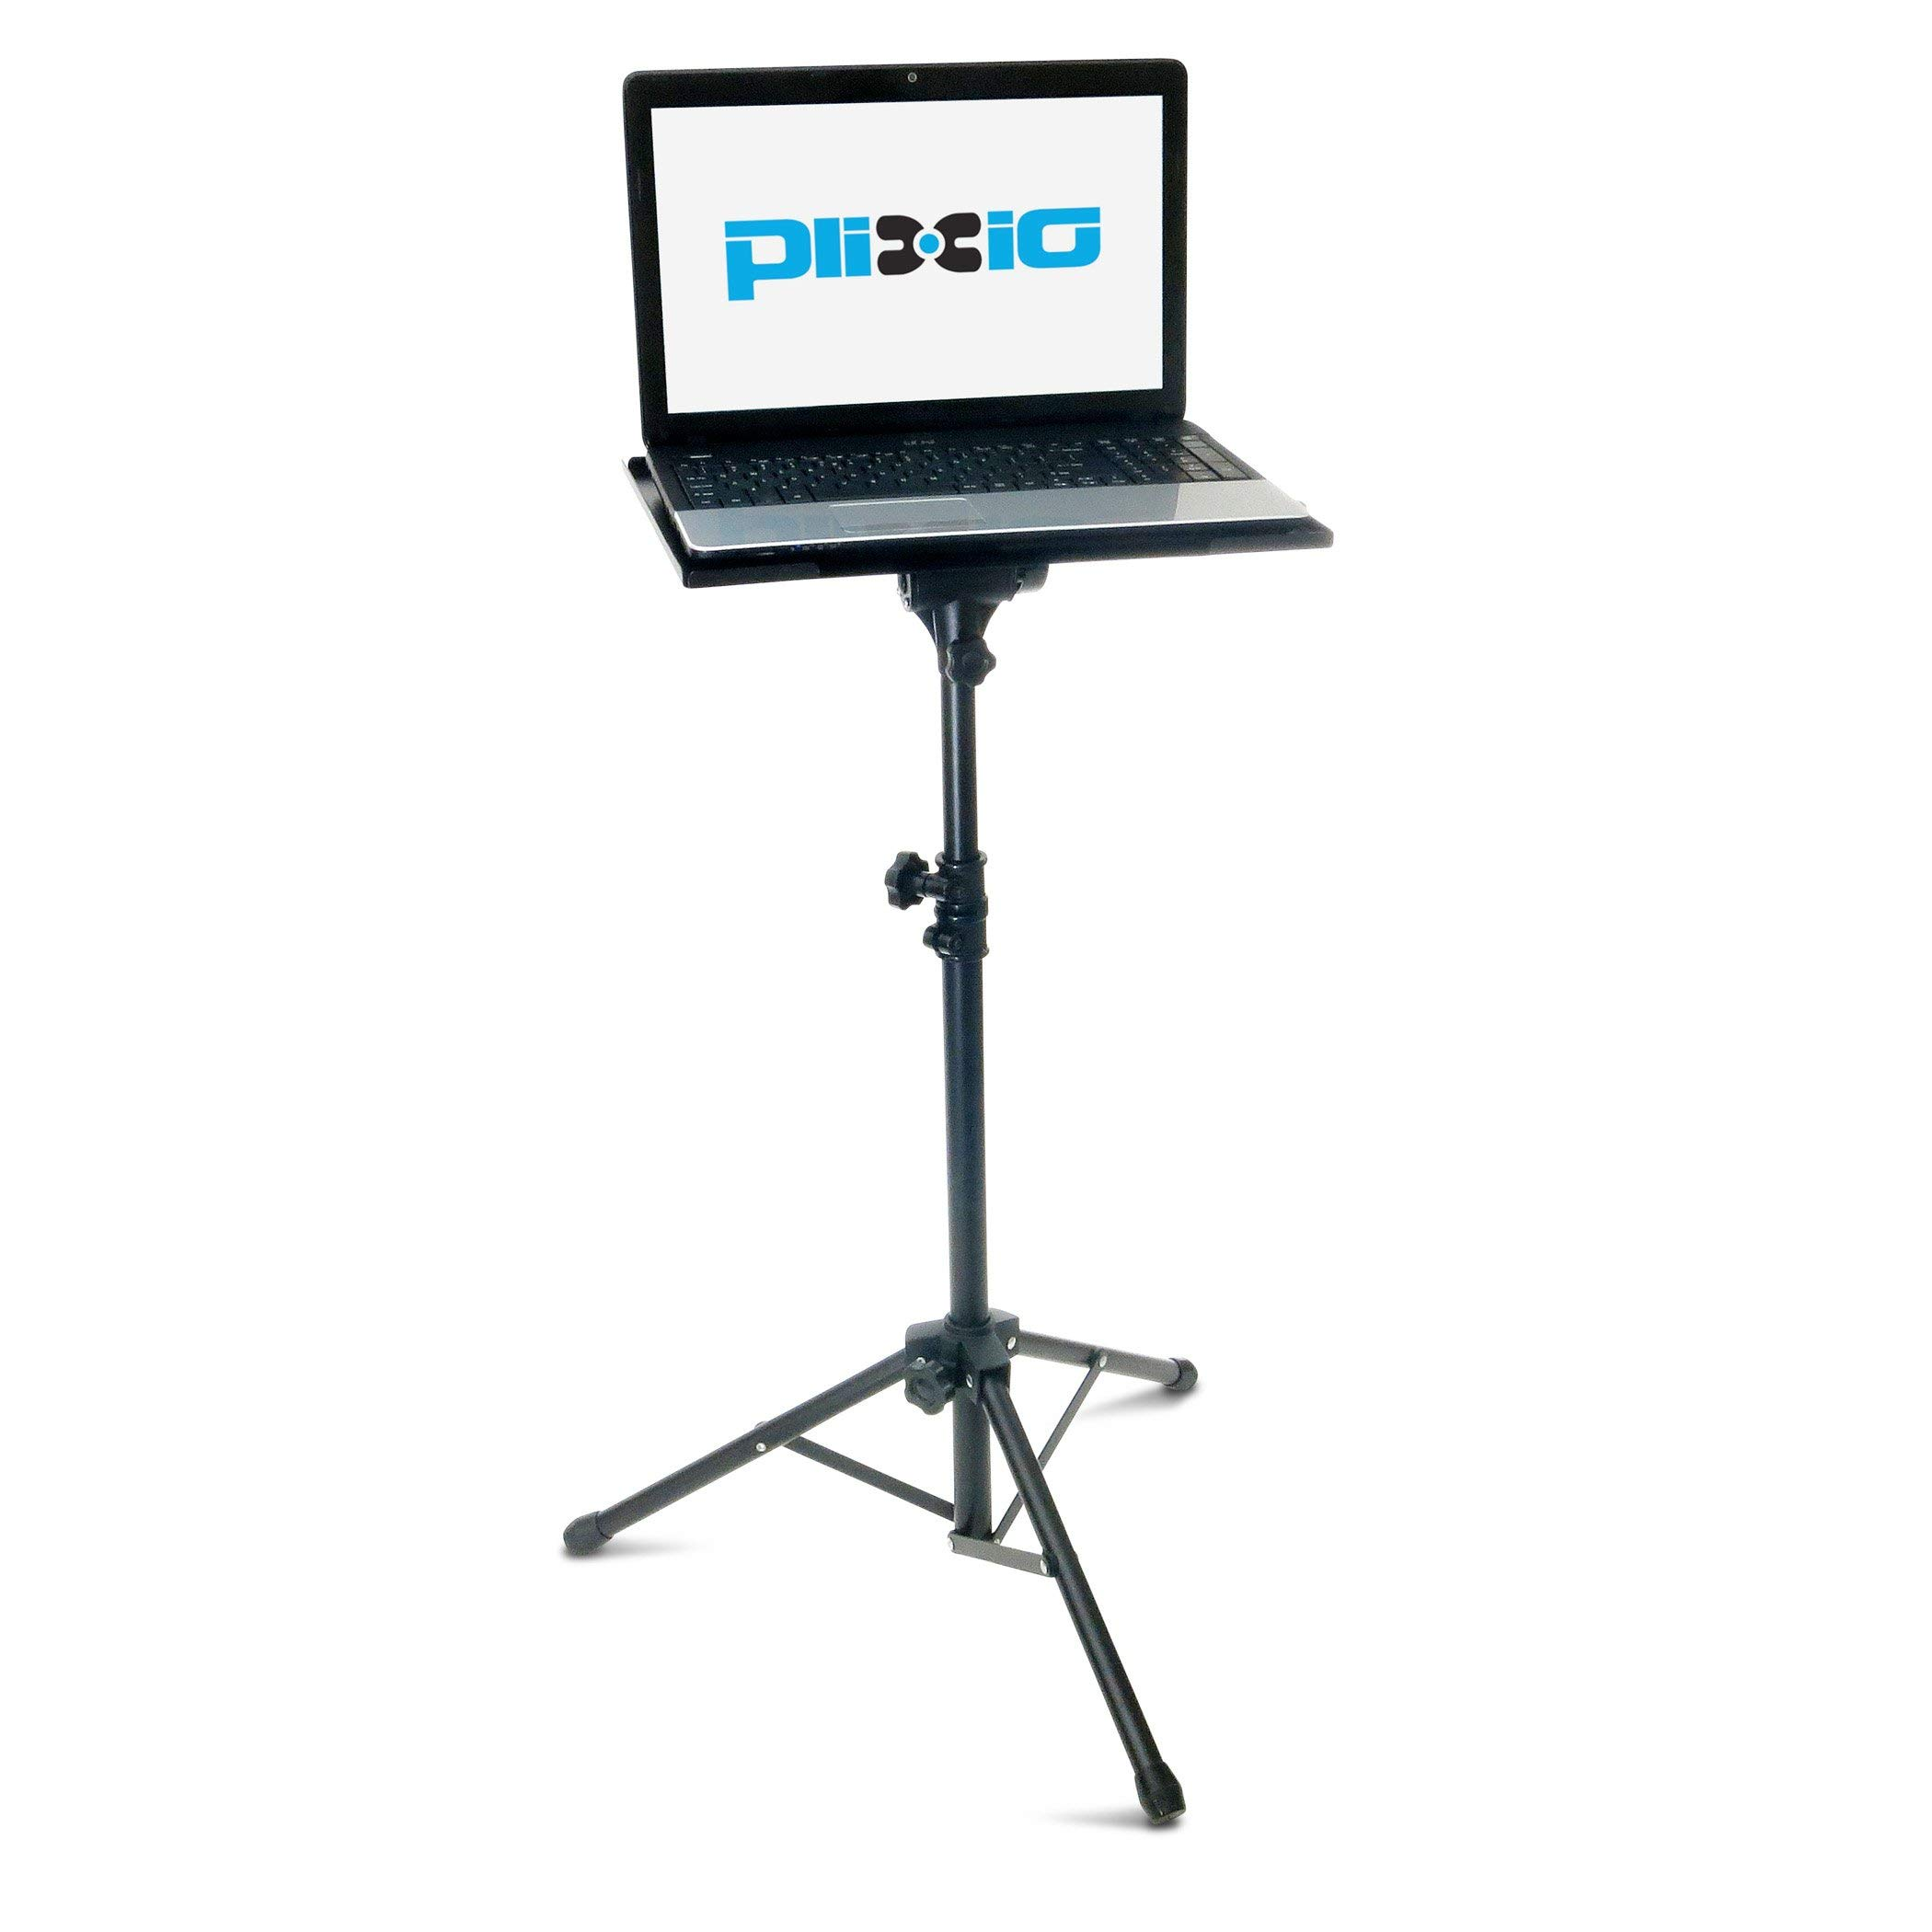 Plixio Adjustable Laptop Projector Stand - Portable Podium Tripod Mount, DJ Mixer Stand Up Desk Computer Stand Tray and Holder (27'' to 48'') (Renewed)